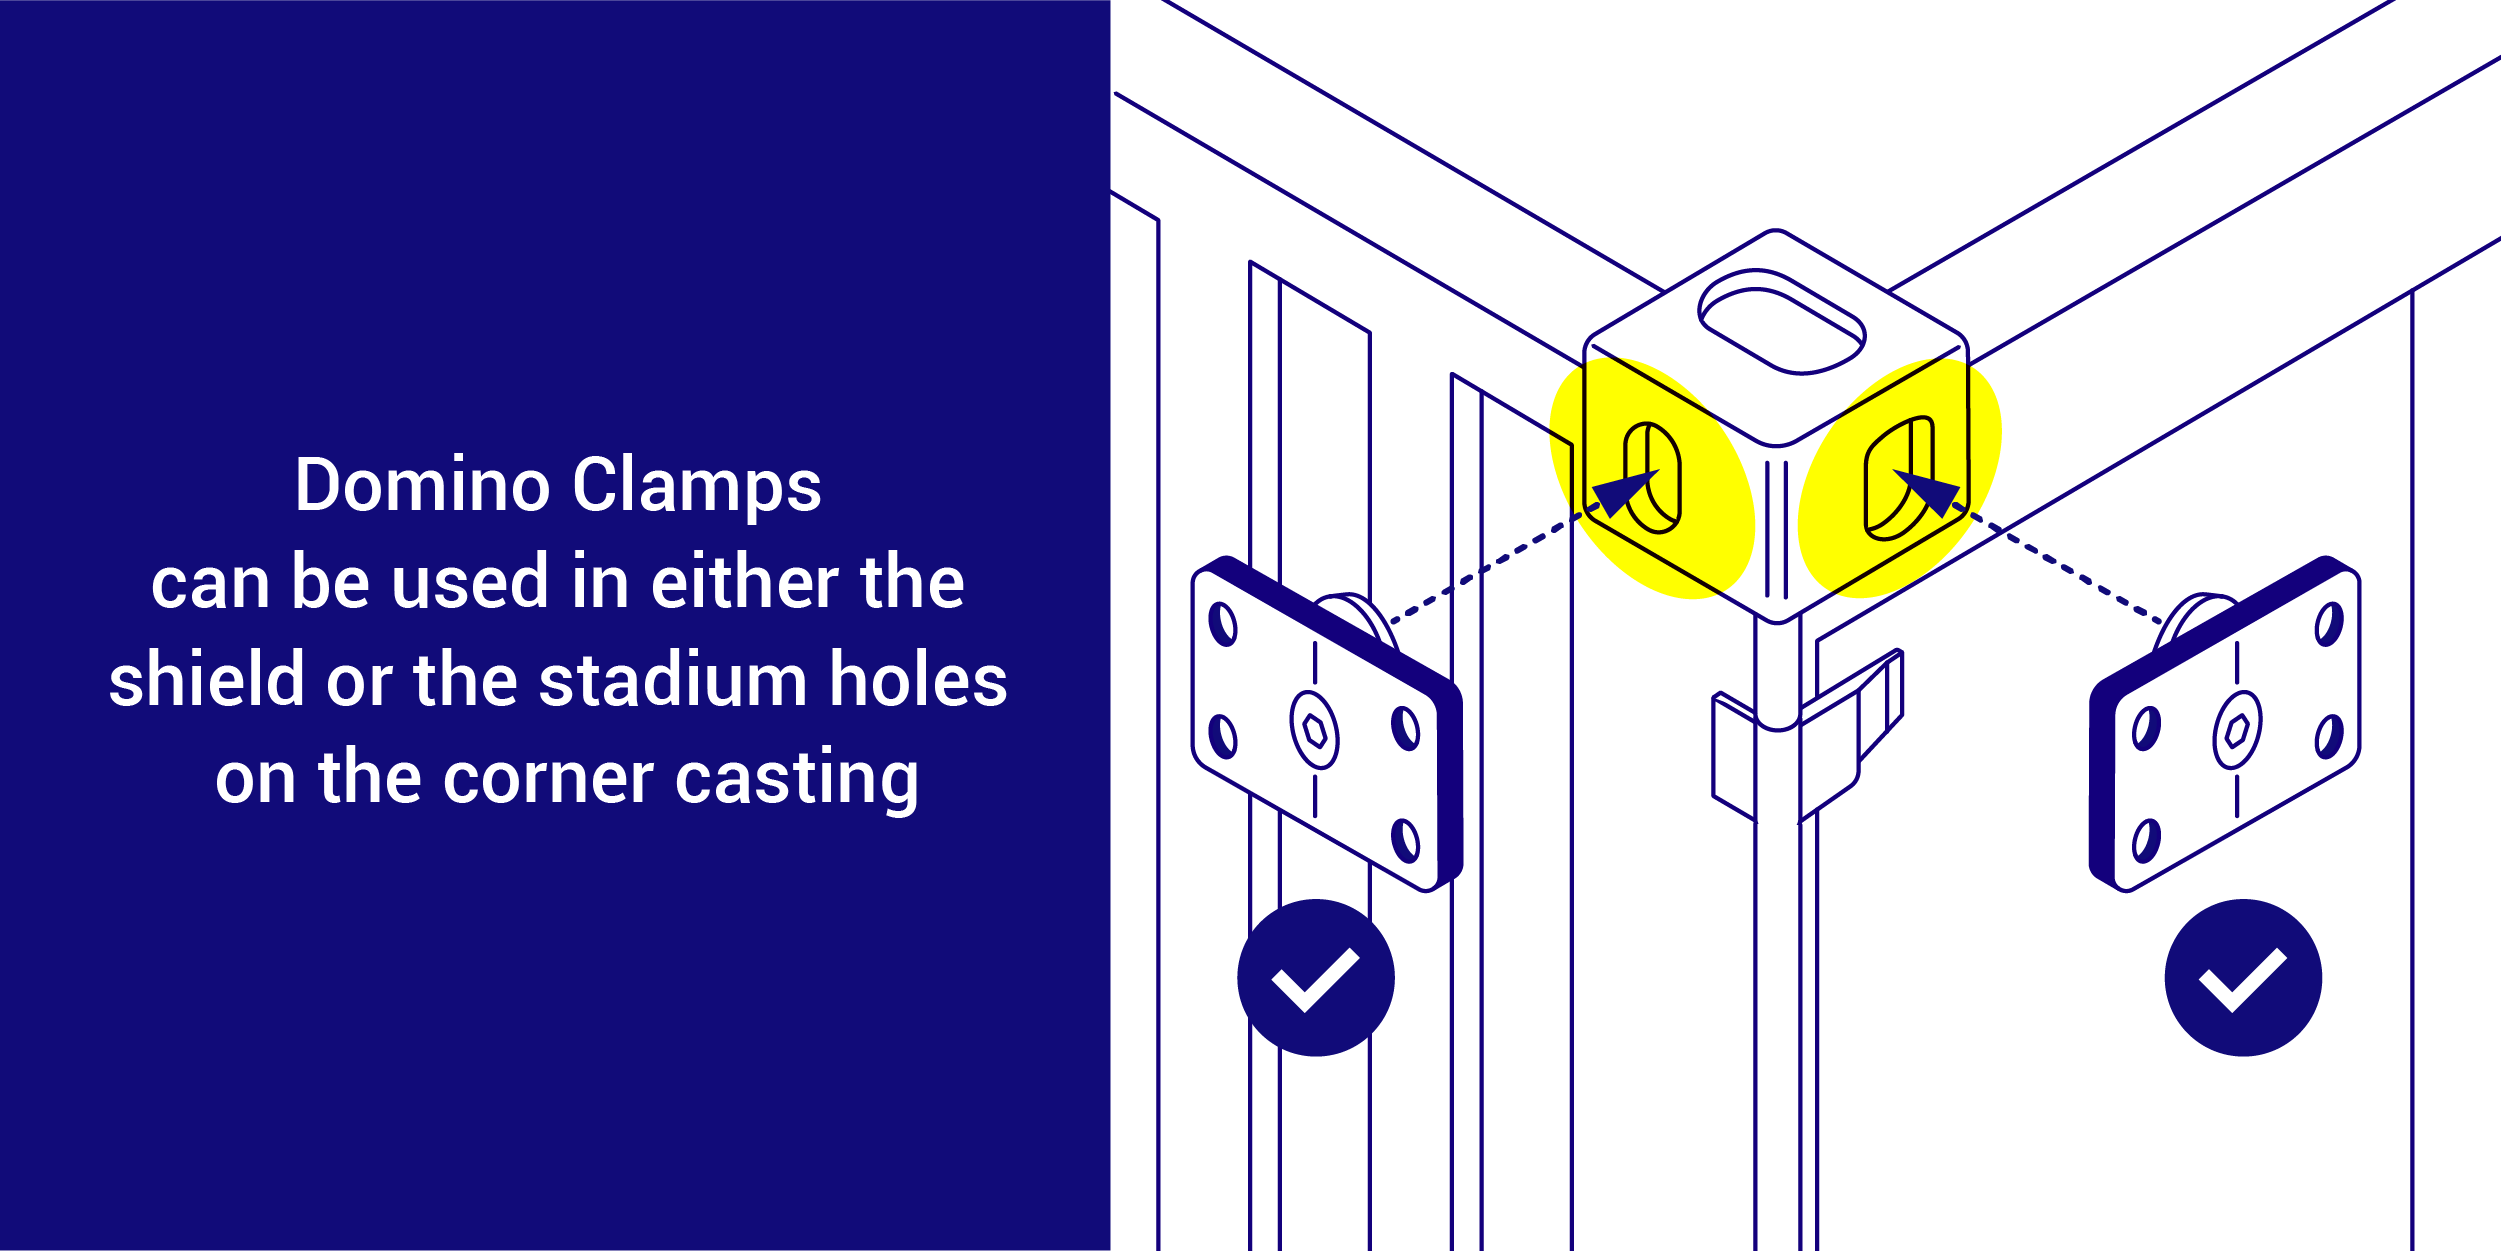 Domino Clamps can be used in the shield or stadium holes on the corner casting